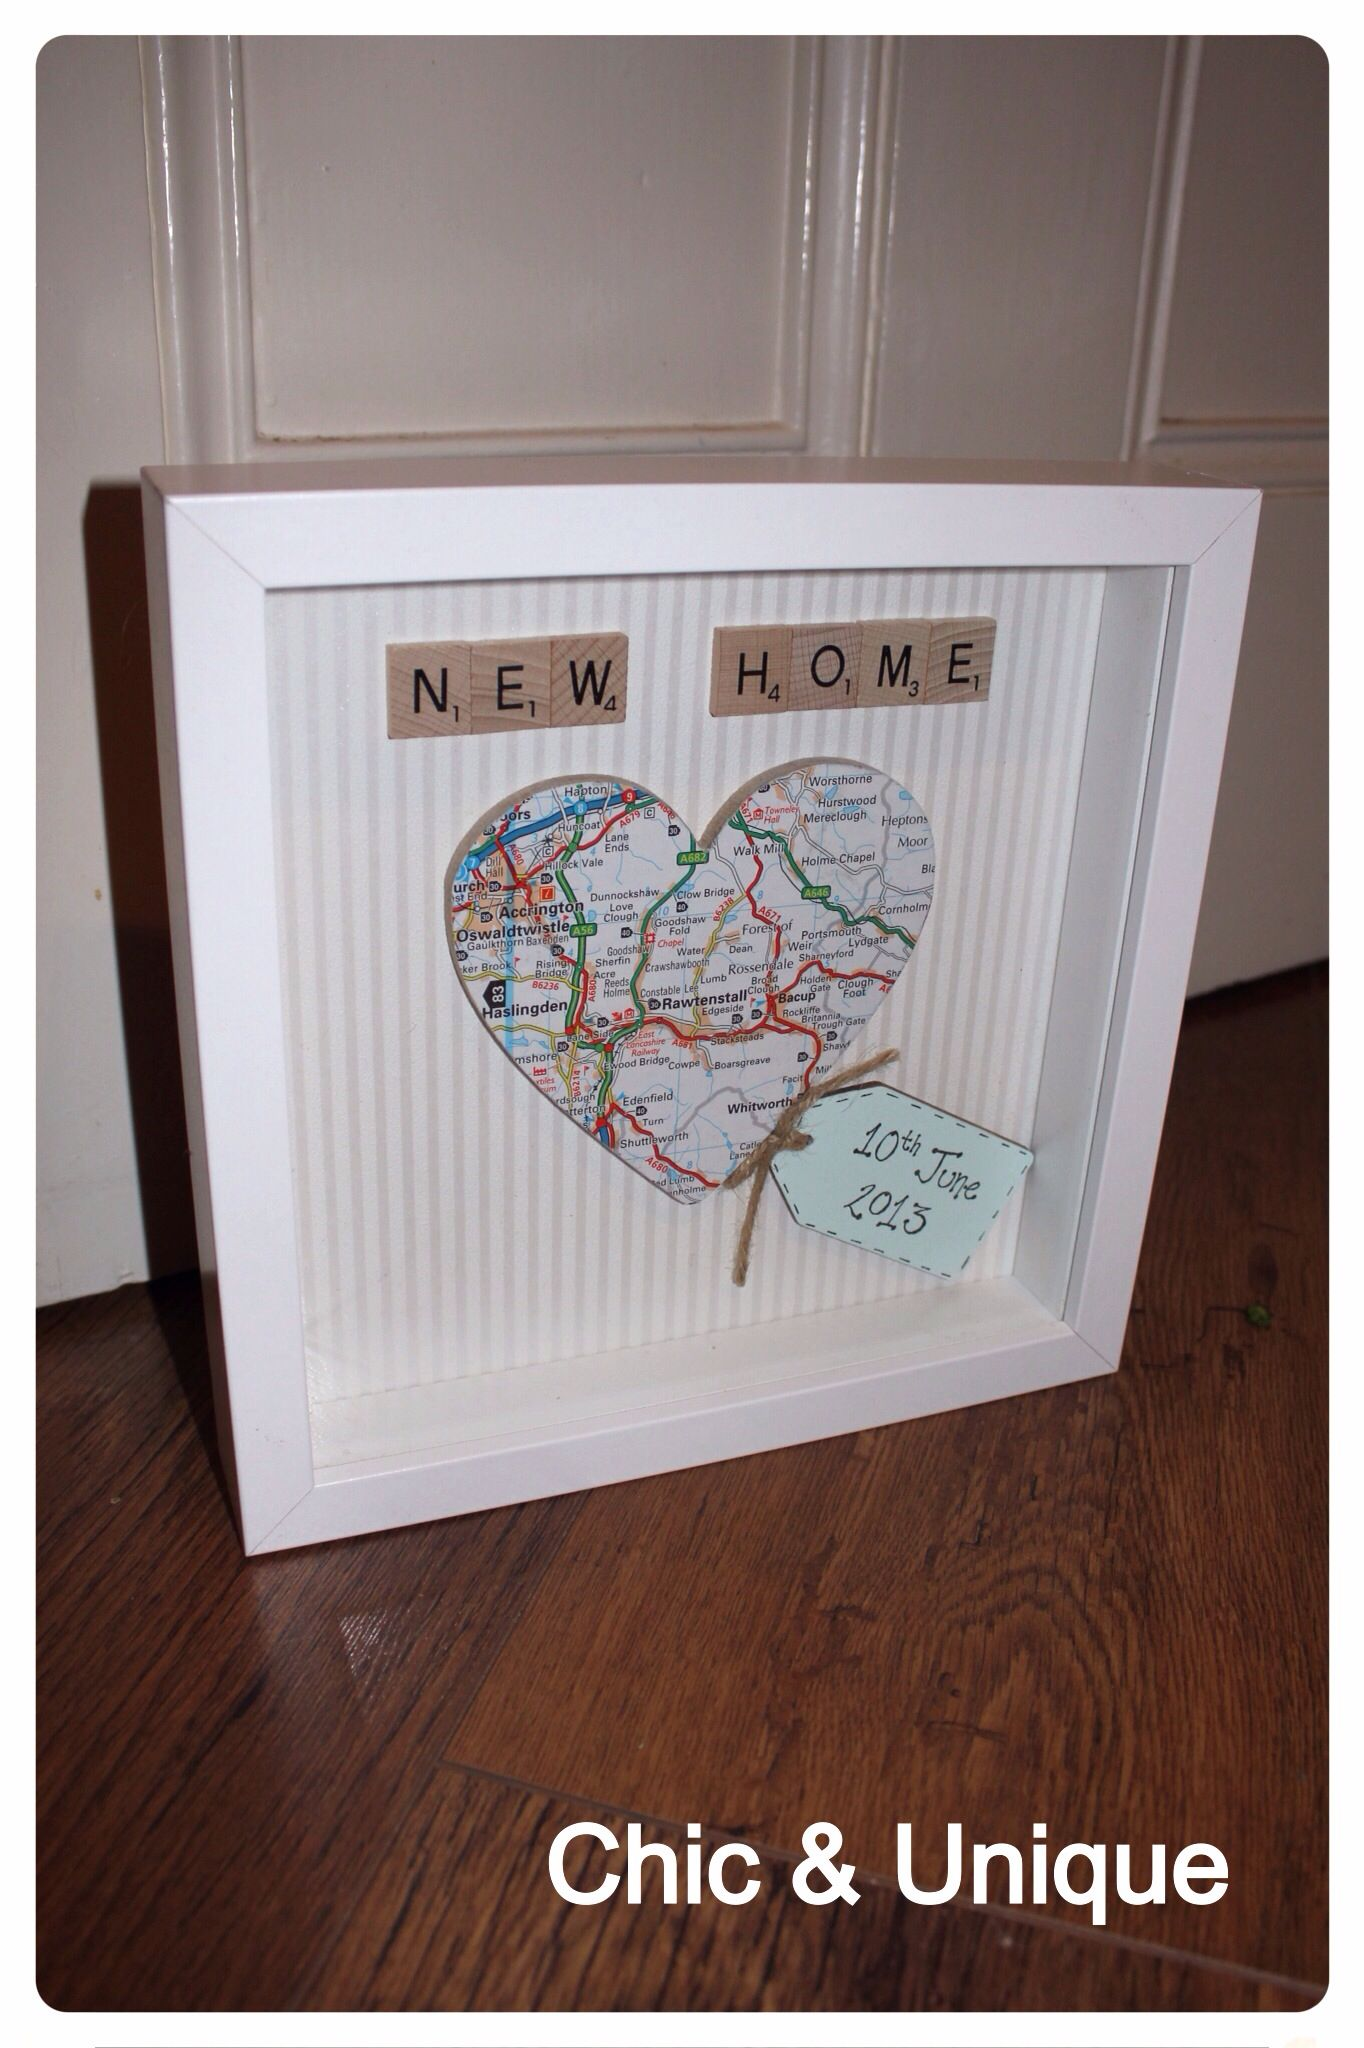 New Home Present Ideas Part - 31: New Home Gift - Decoupaged Map Heart In Box Fram With Scrabble Letters.  Bespoke Designs